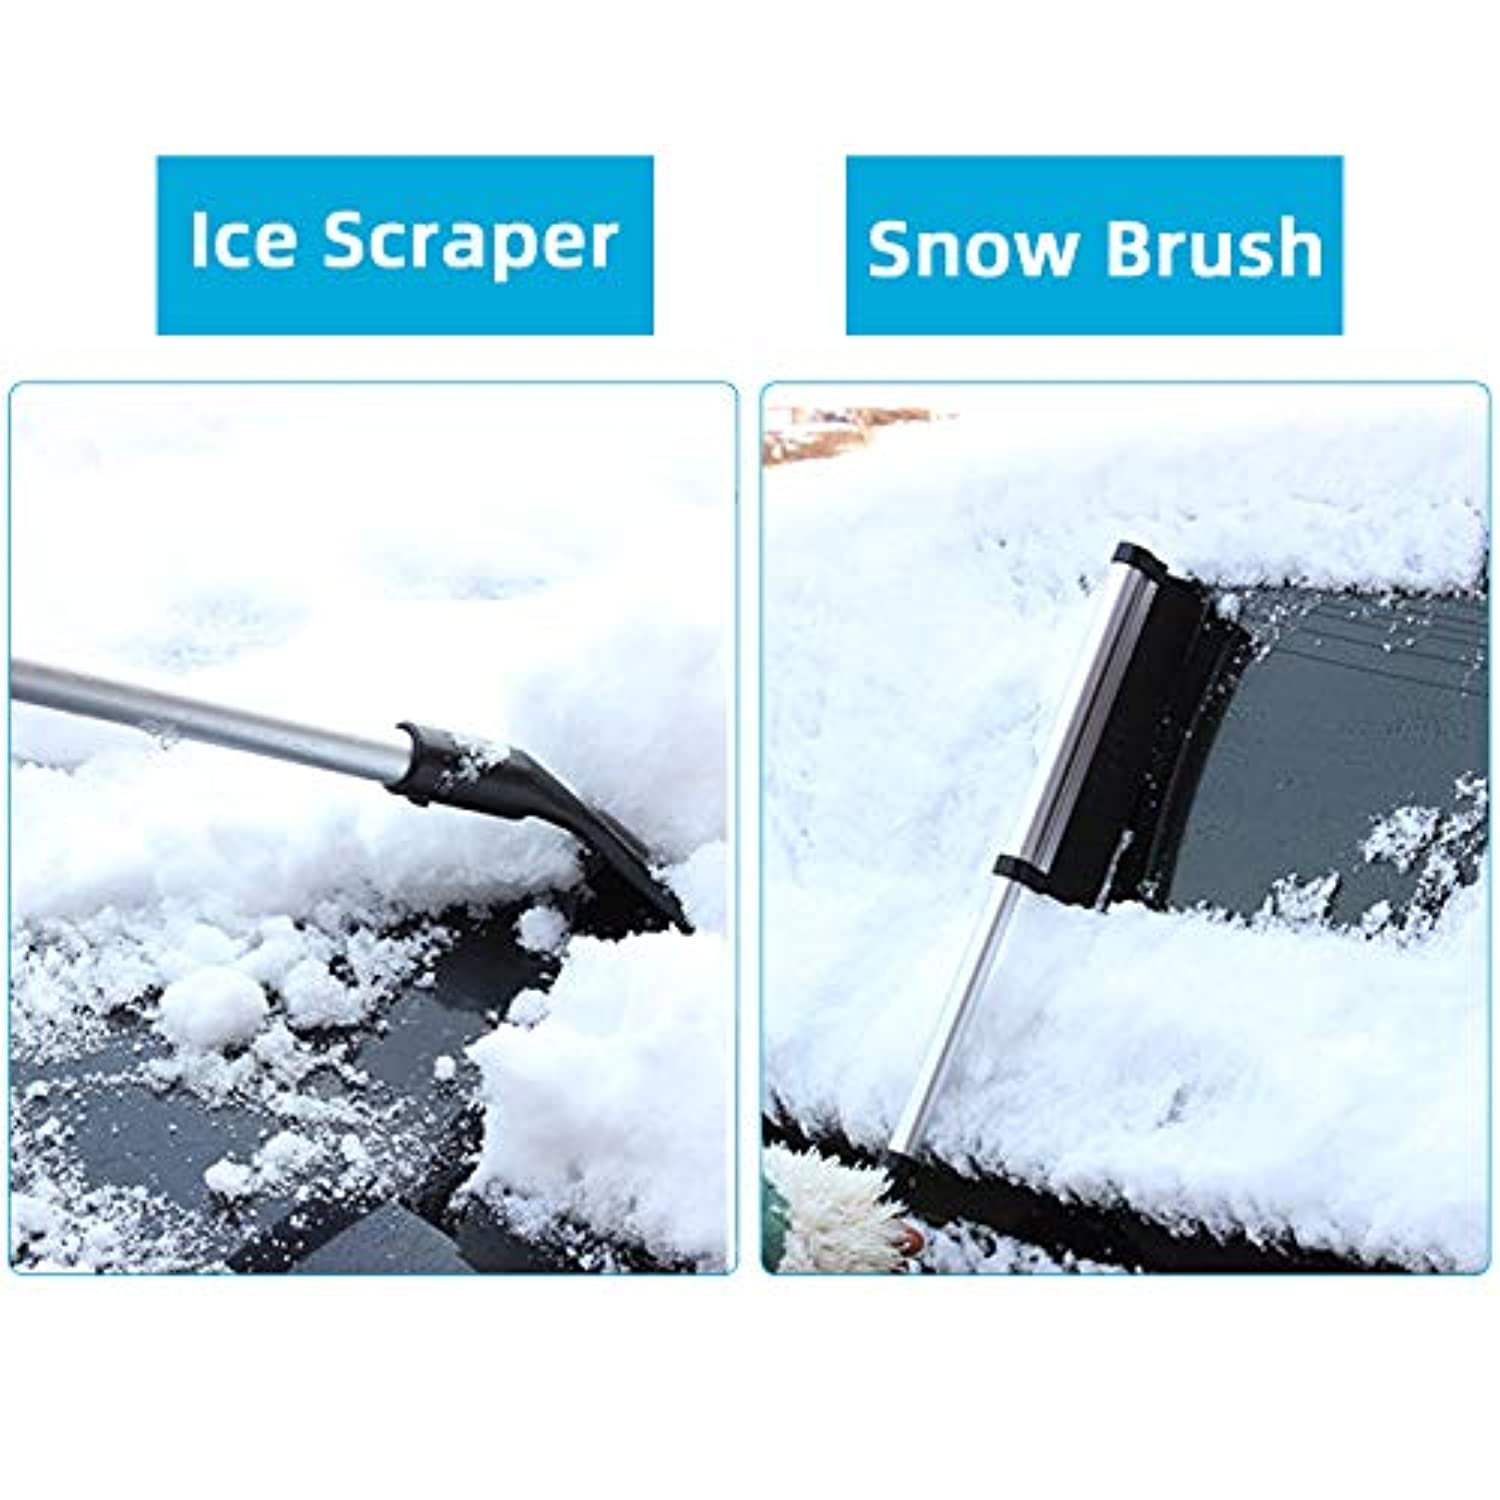 Extends From 17 to 25 inch Retractable Snow Brush Ice Scraper for Car with Brush /& Metal Grip 2 in 1 Black Portable Auto Car Snow Brushes Lightweight Aluminium Alloy Ice Scrapers for Car Windshield